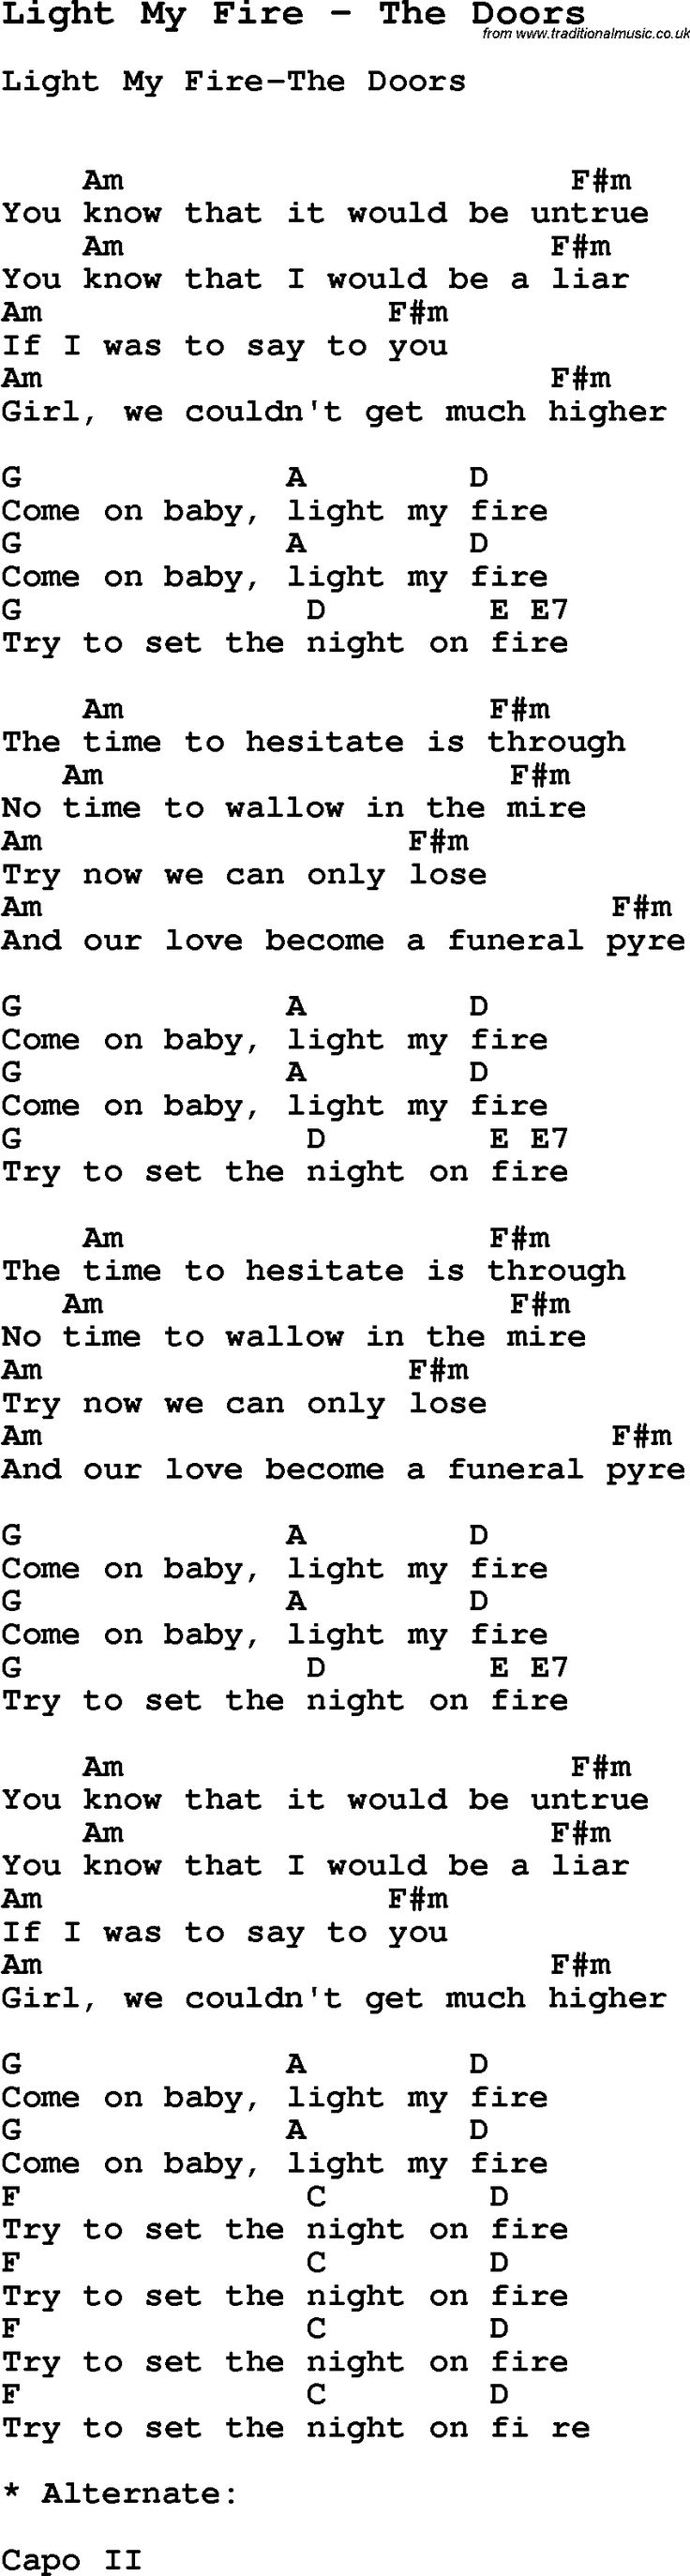 351 best ukulele images on pinterest sheet music songs and the doors light my fire wlyrics guitar chords and accompaniment chords for ukulele guitar banjo etc hexwebz Choice Image